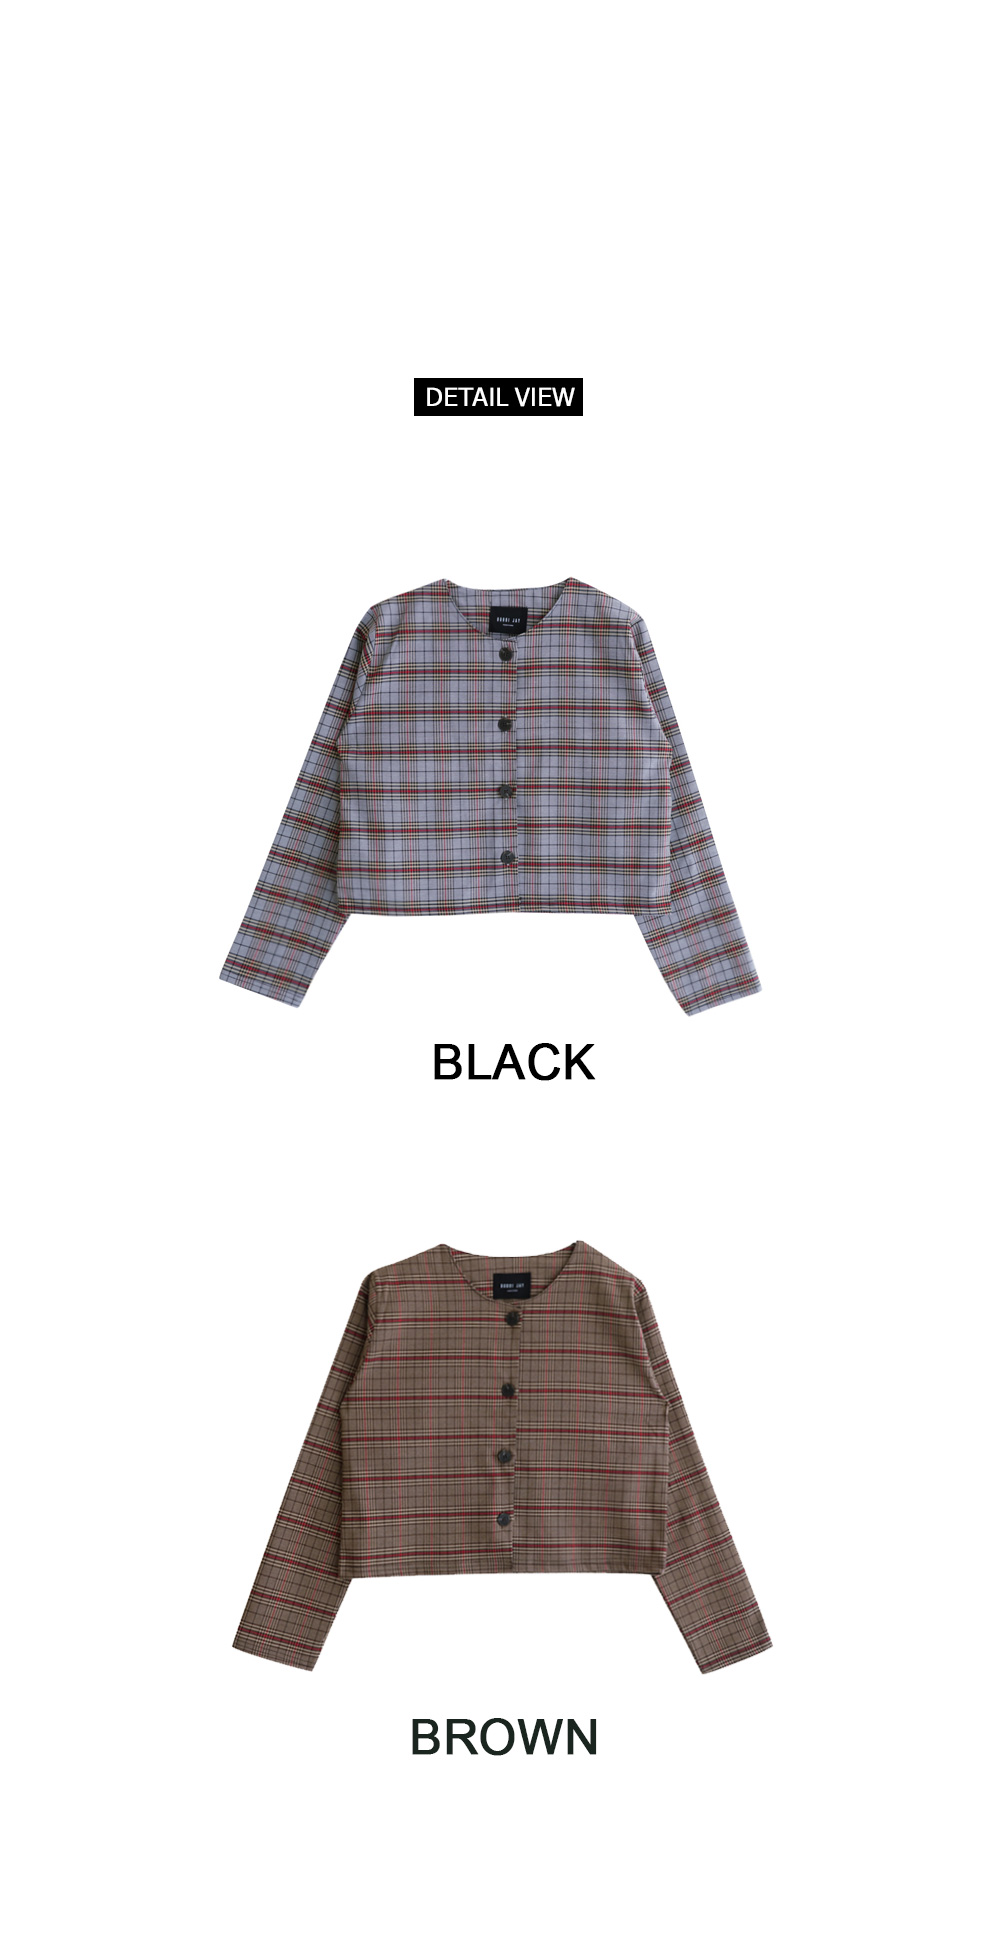 Mark blouse shirt